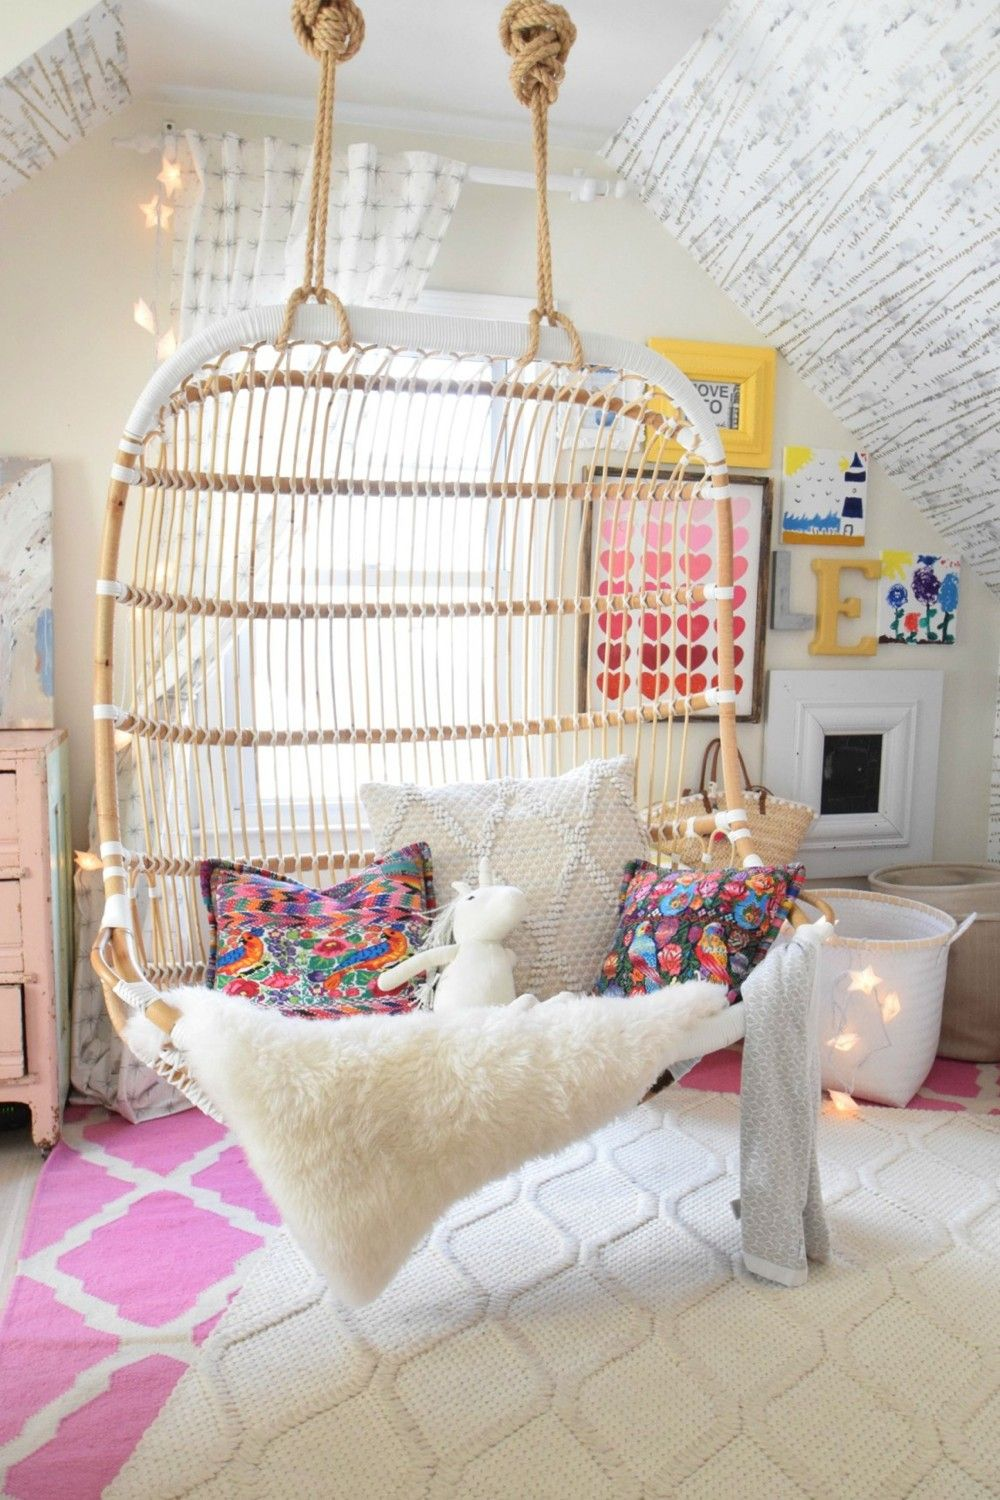 Cute Lighting Fixtures and A Swinging Chair